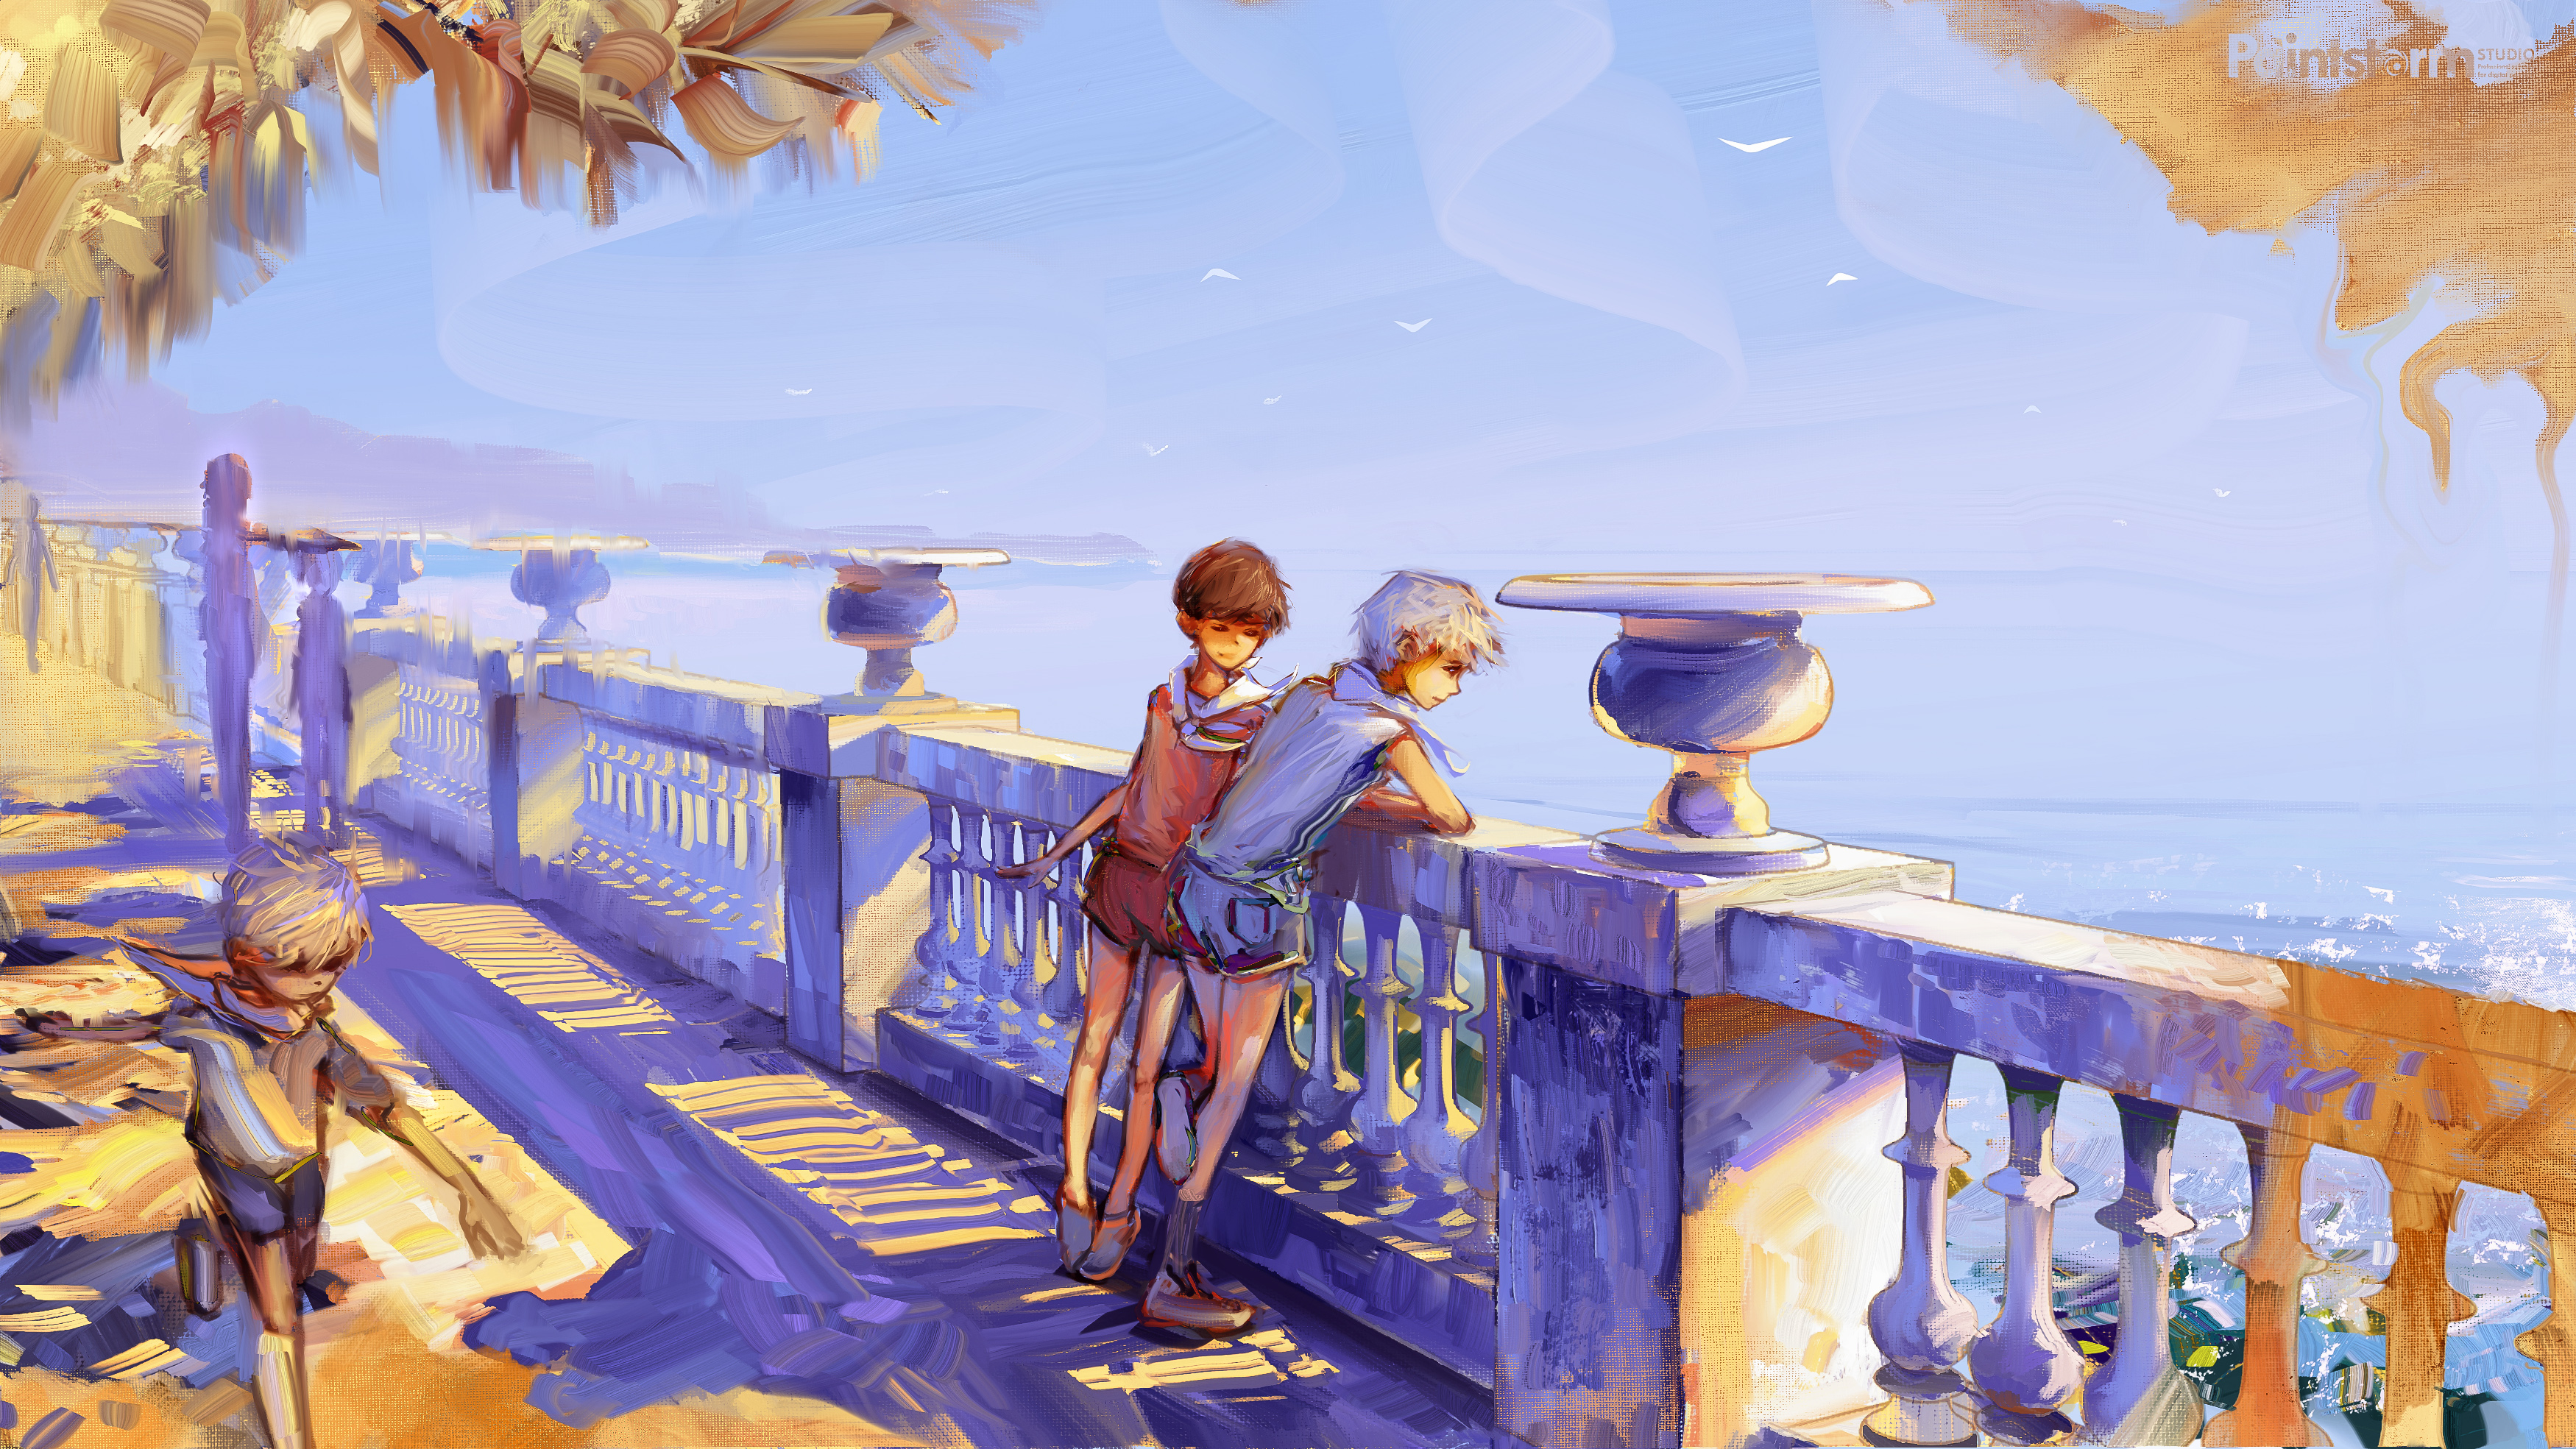 128477 download wallpaper Art, Children, Summer, Embankment, Quay, Boys screensavers and pictures for free